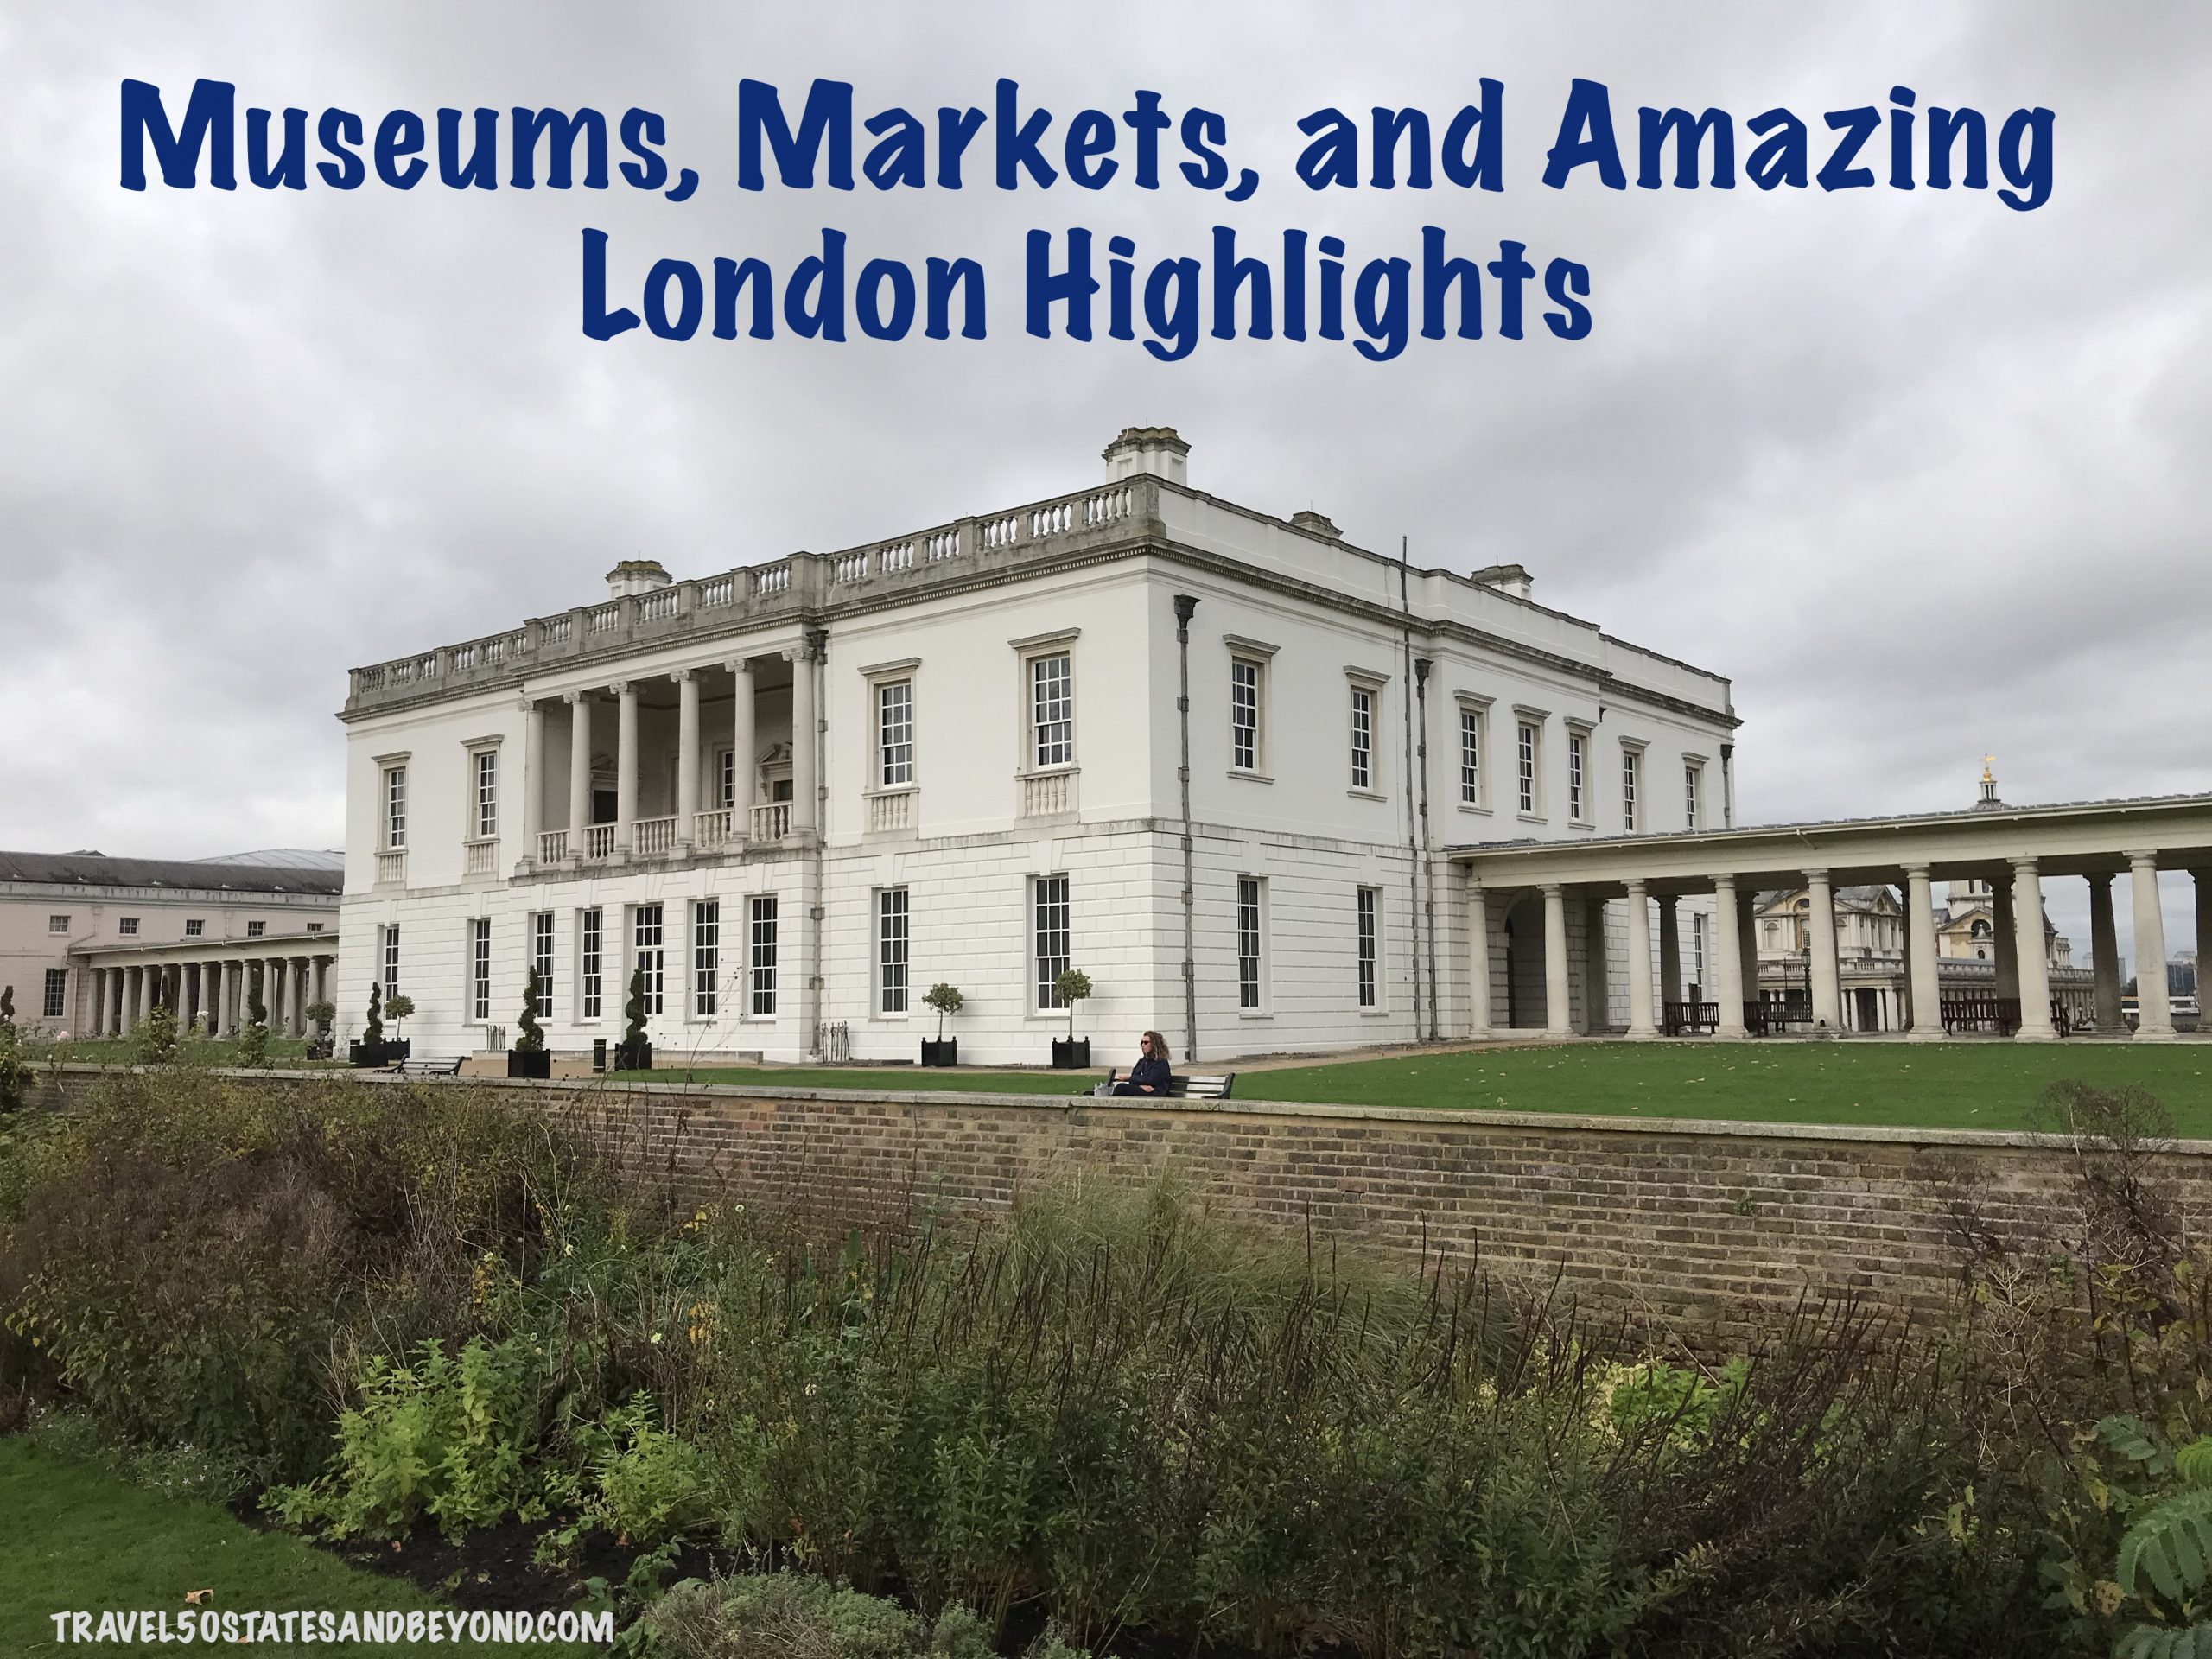 Markets, Museums, & Amazing London Highlights